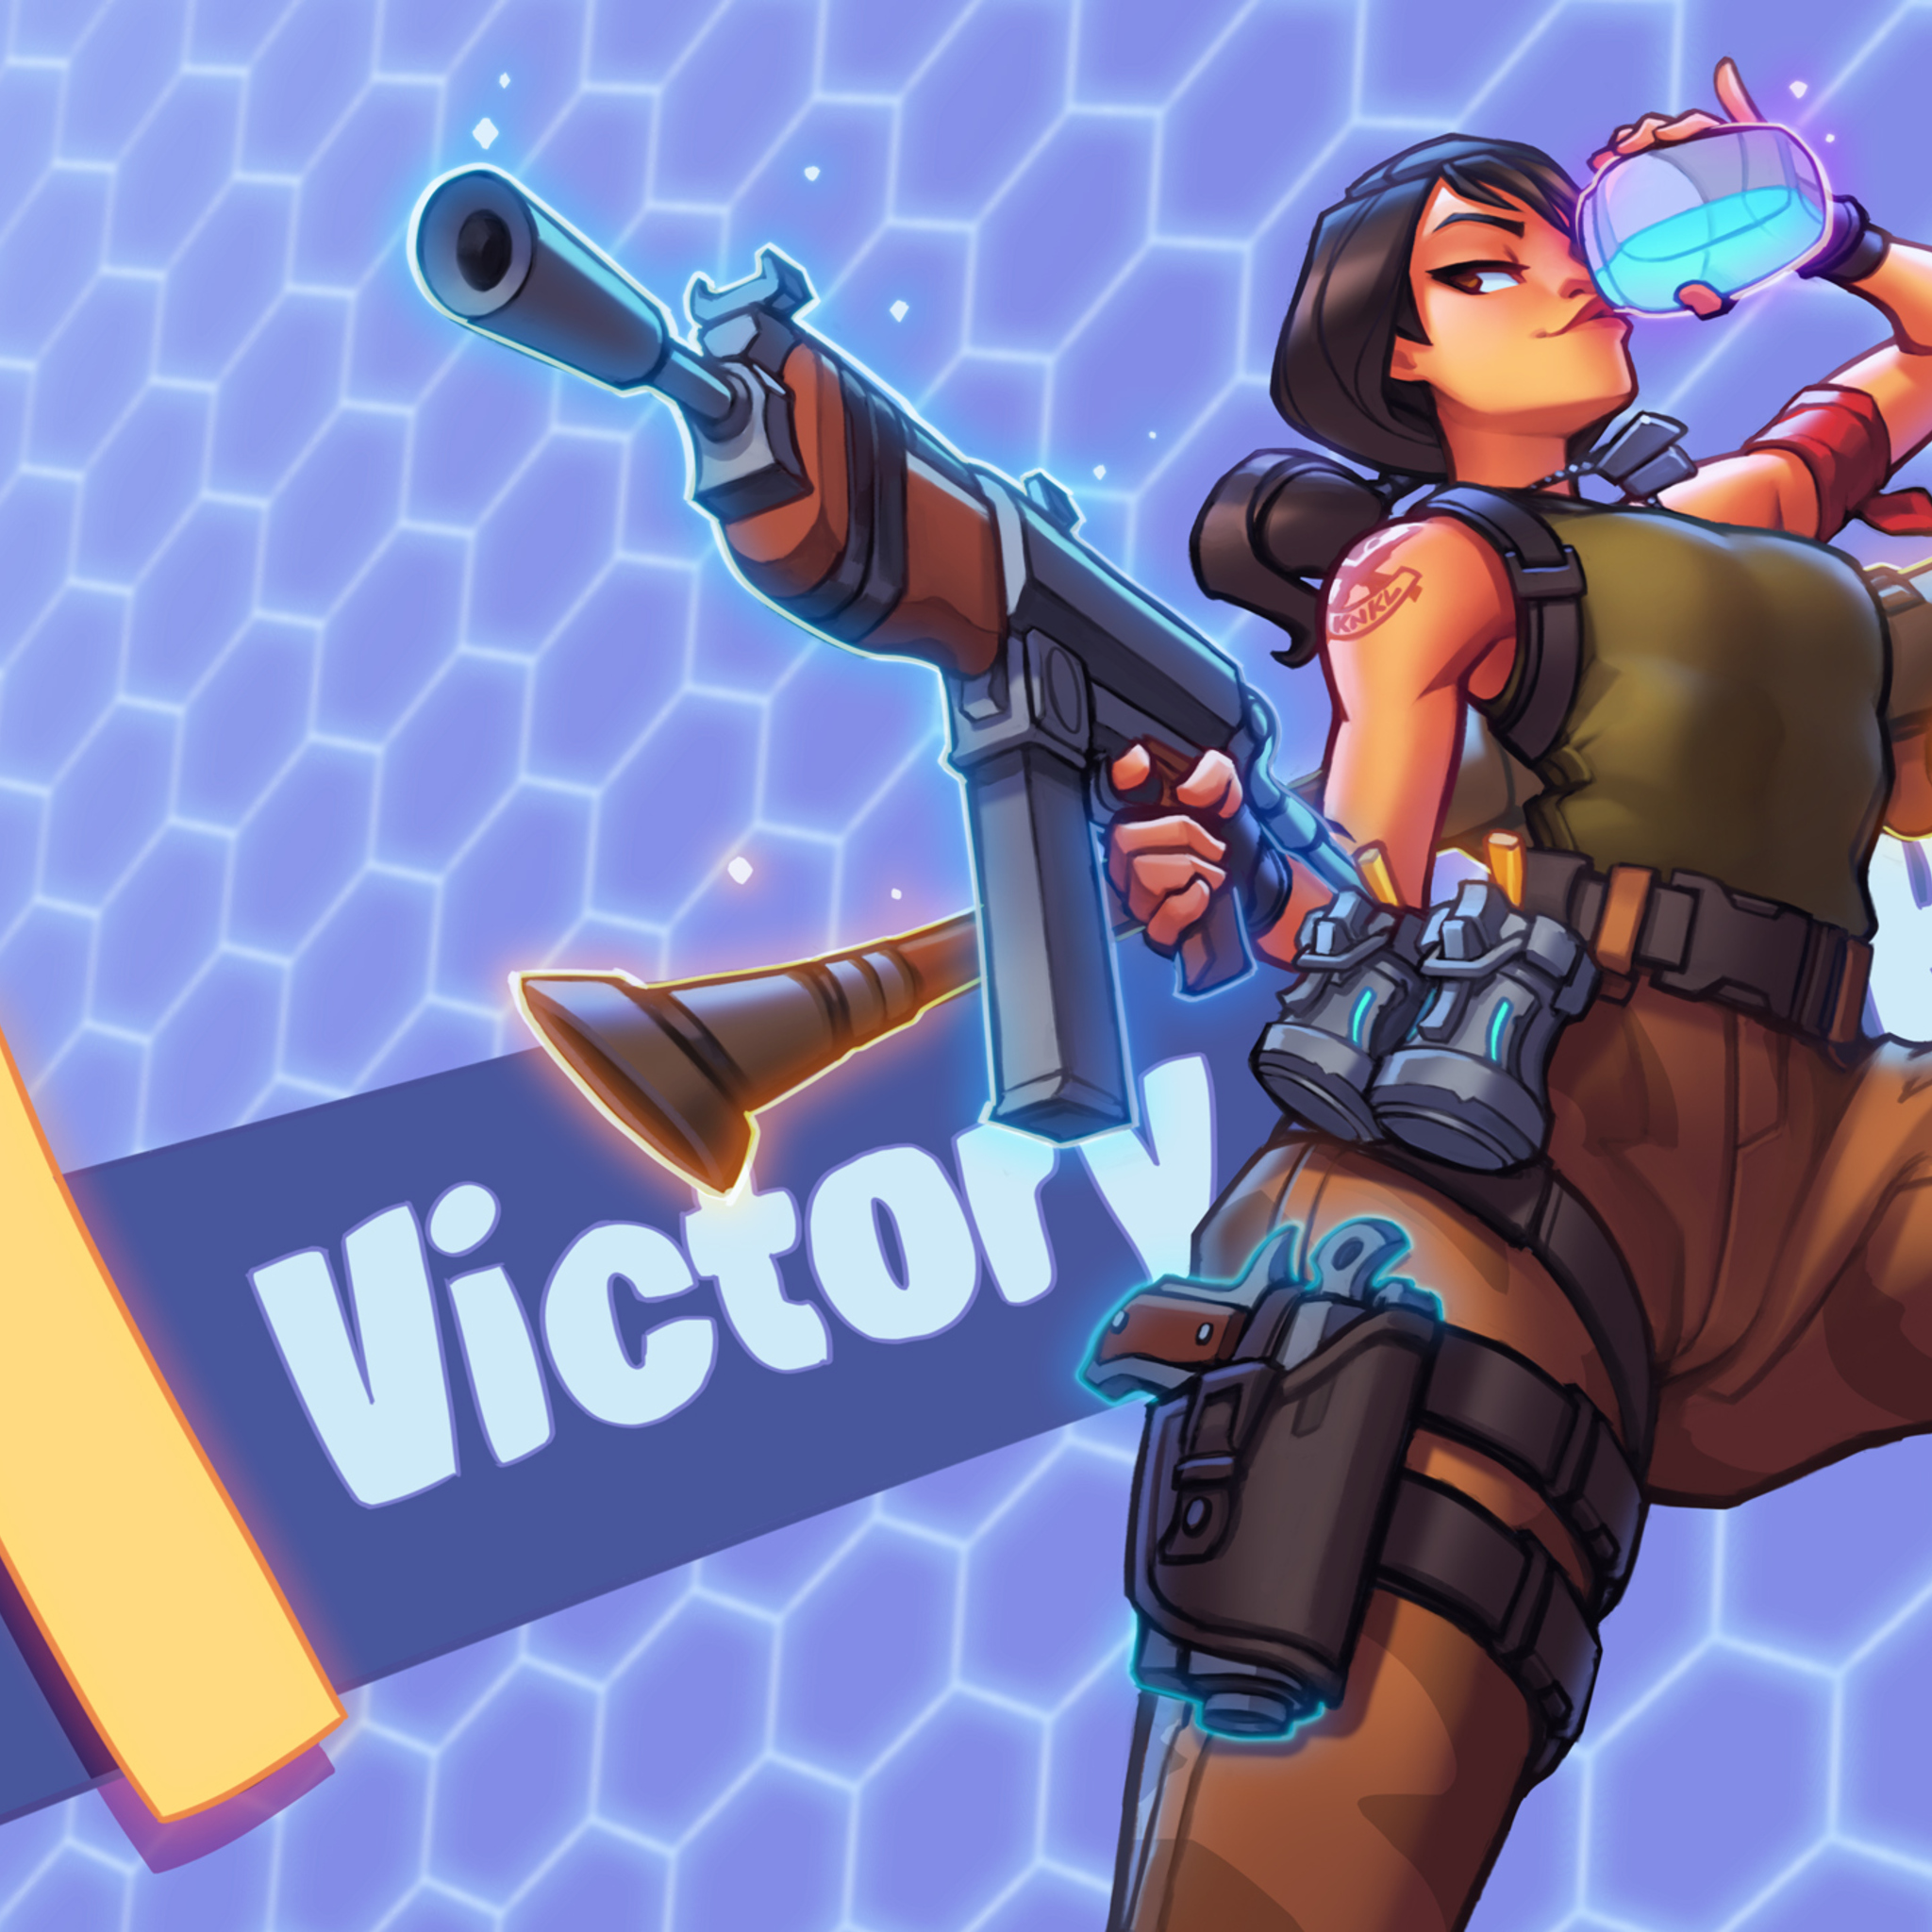 2048x2048 Fortnite 2018 Victory Royale Ipad Air HD 4k